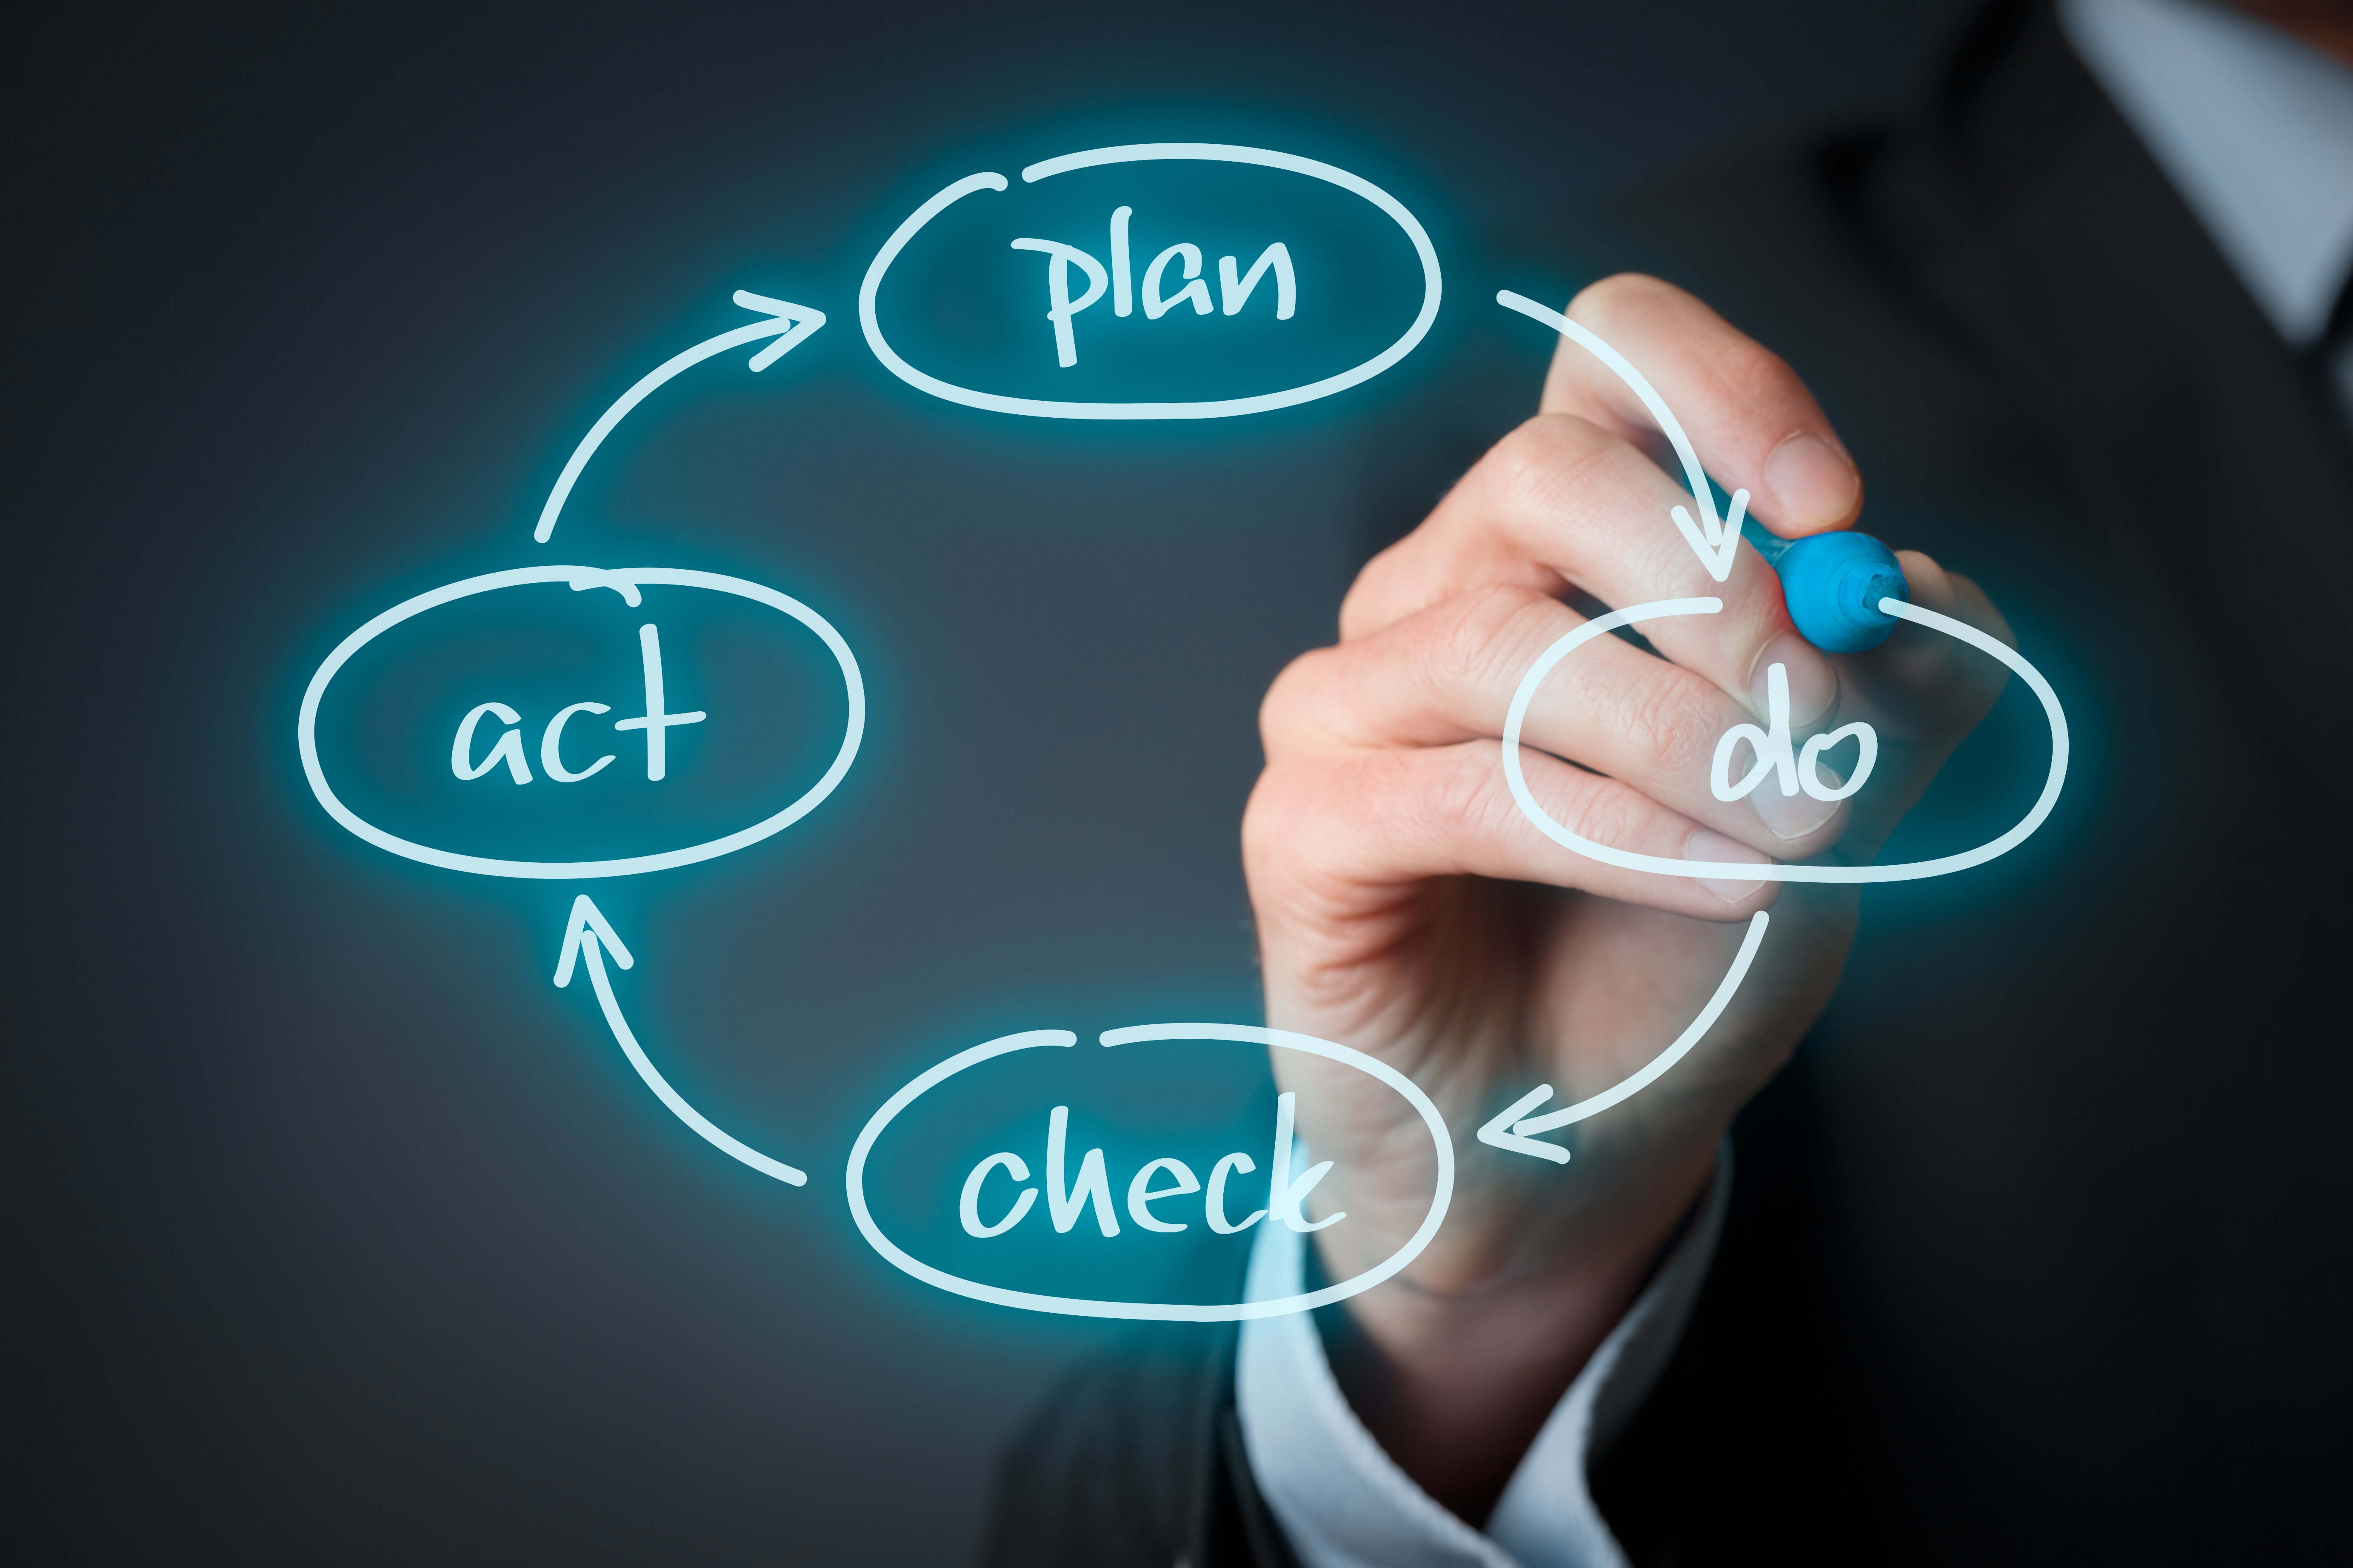 Pdca What Is The Meaning Of The Plan Do Check Act Cycle